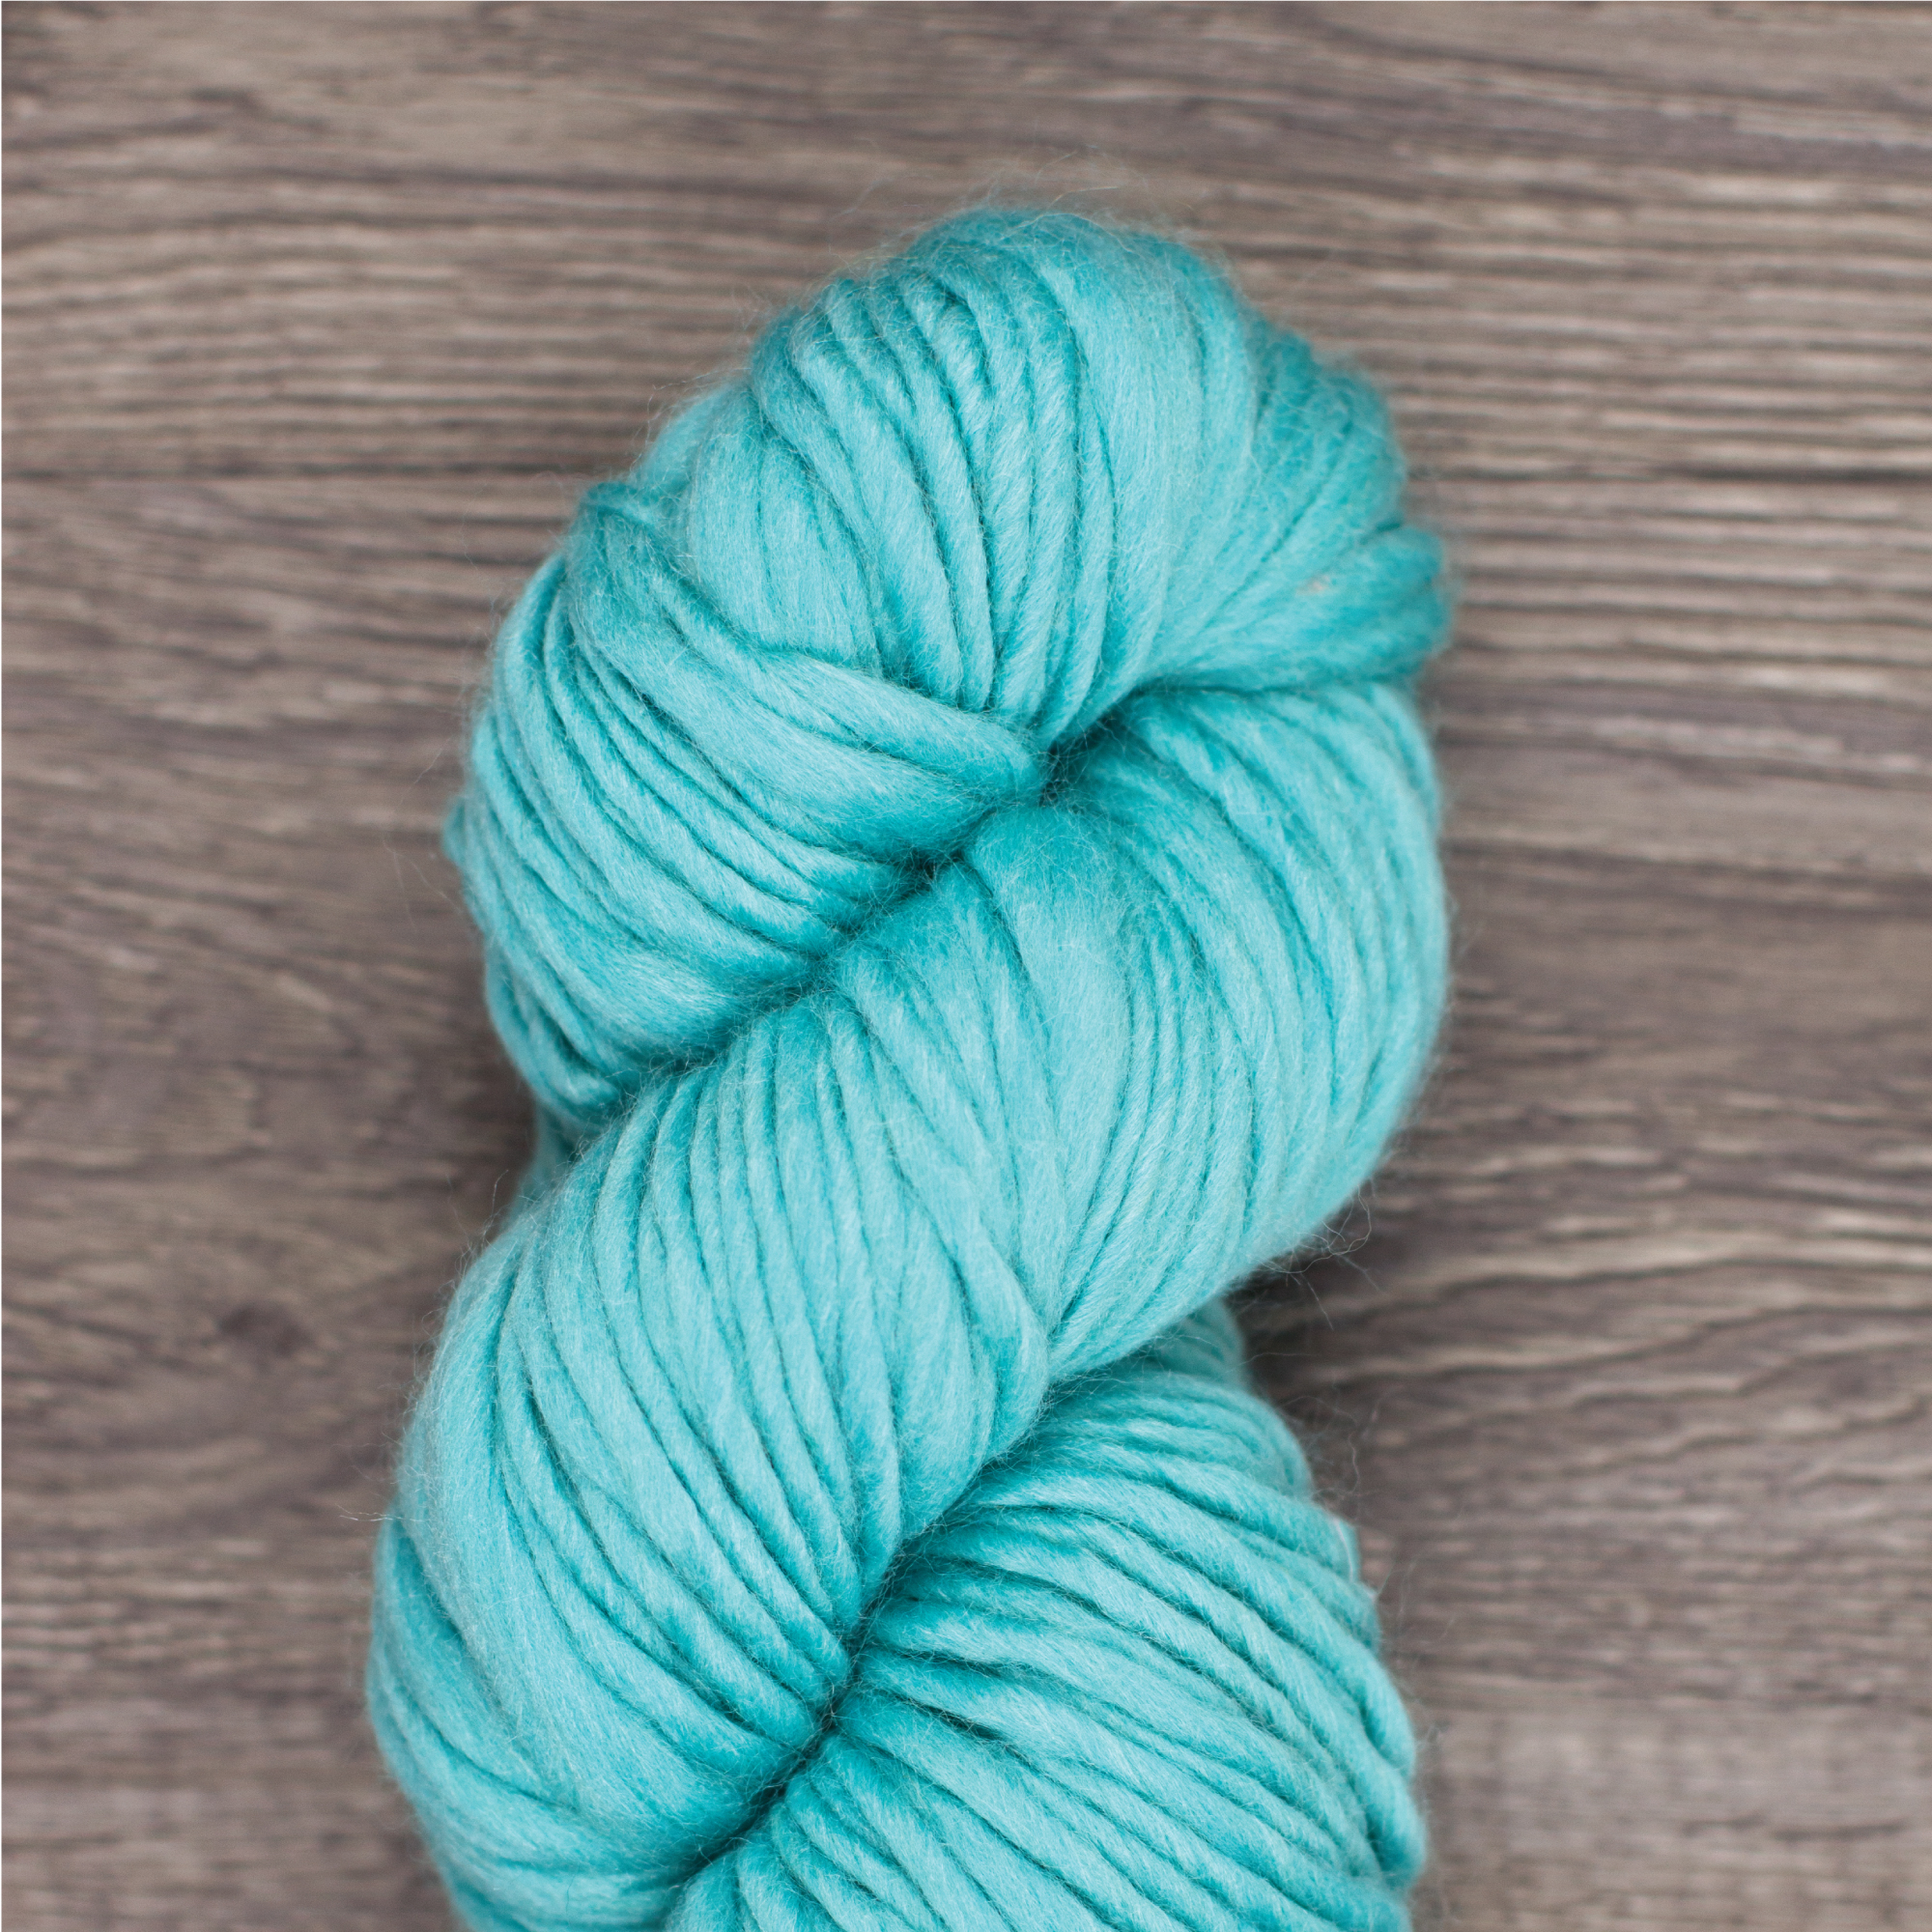 VIVACE by Cloud9 Fibers — 900222 | GLACIER POOL